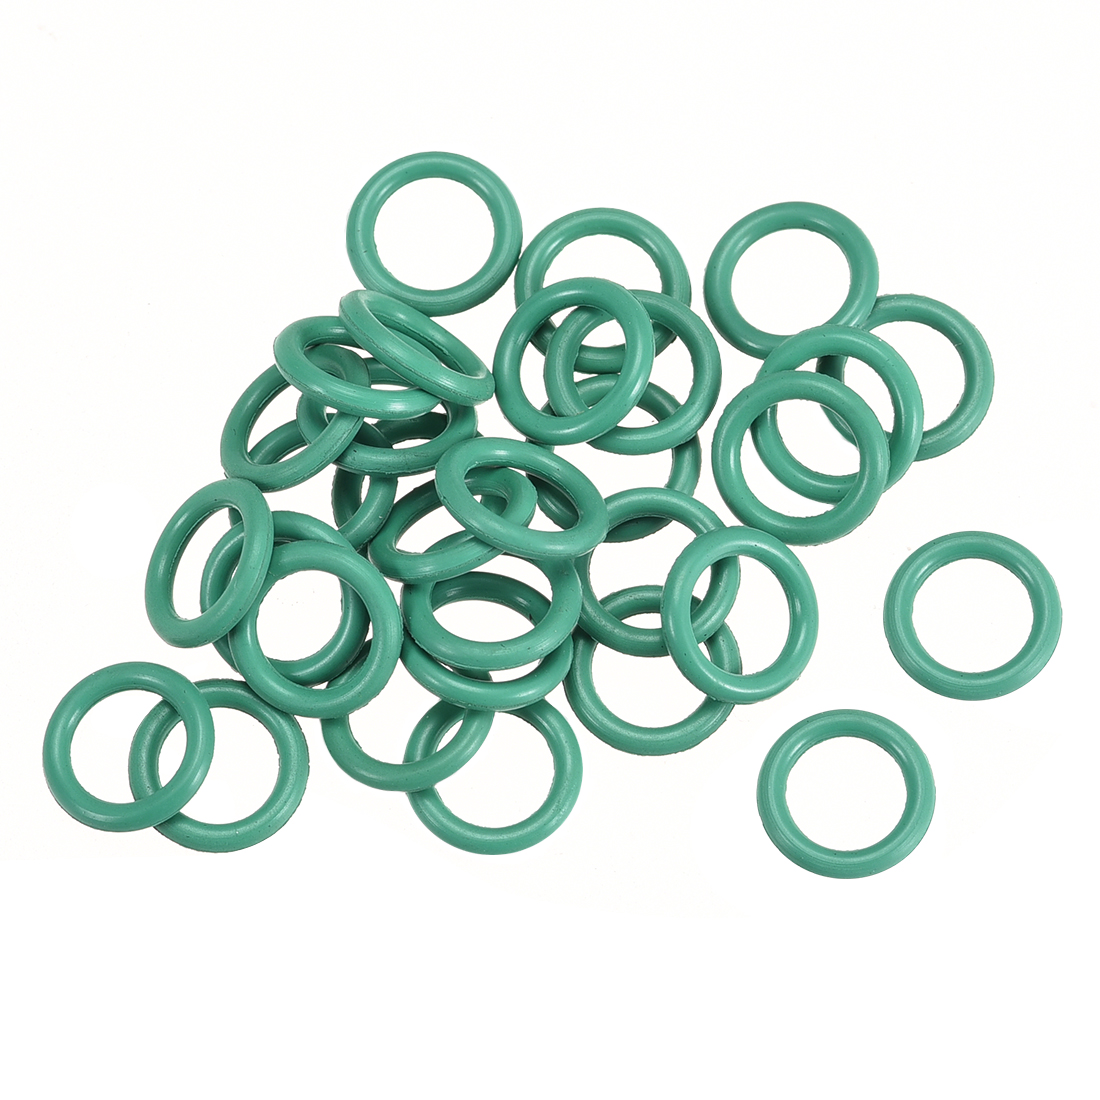 30pcs 1.5mm Thick Heat Resistant Mini Green O-Ring Rubber Sealing Ring 9mm OD